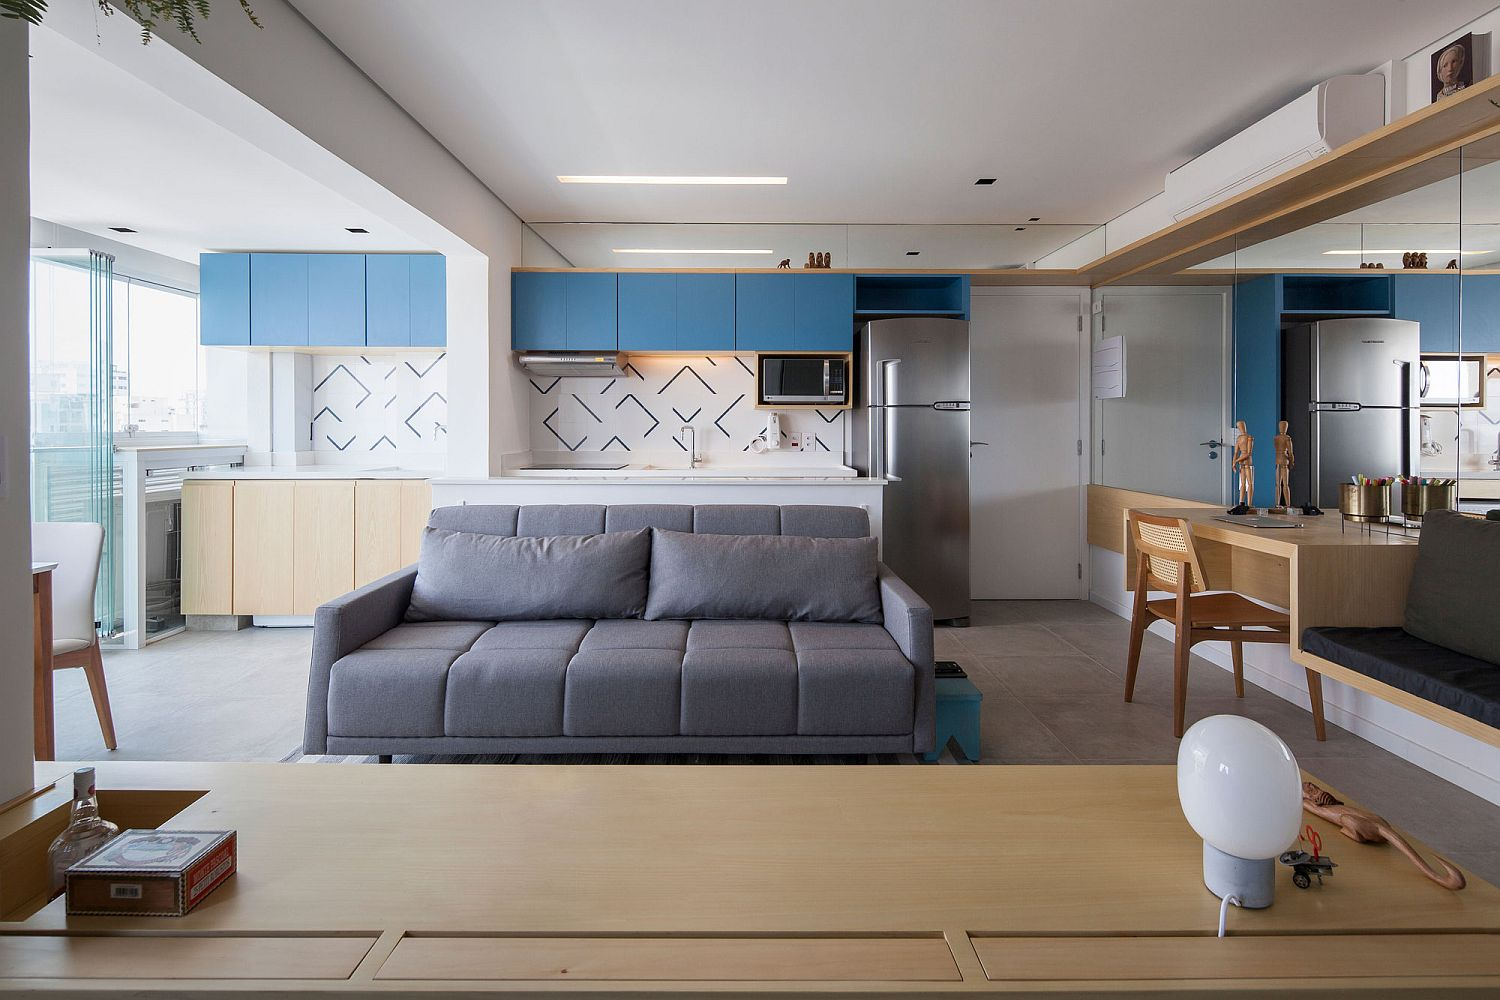 Living room of 38 square meter apartment feels much larger than it really is!